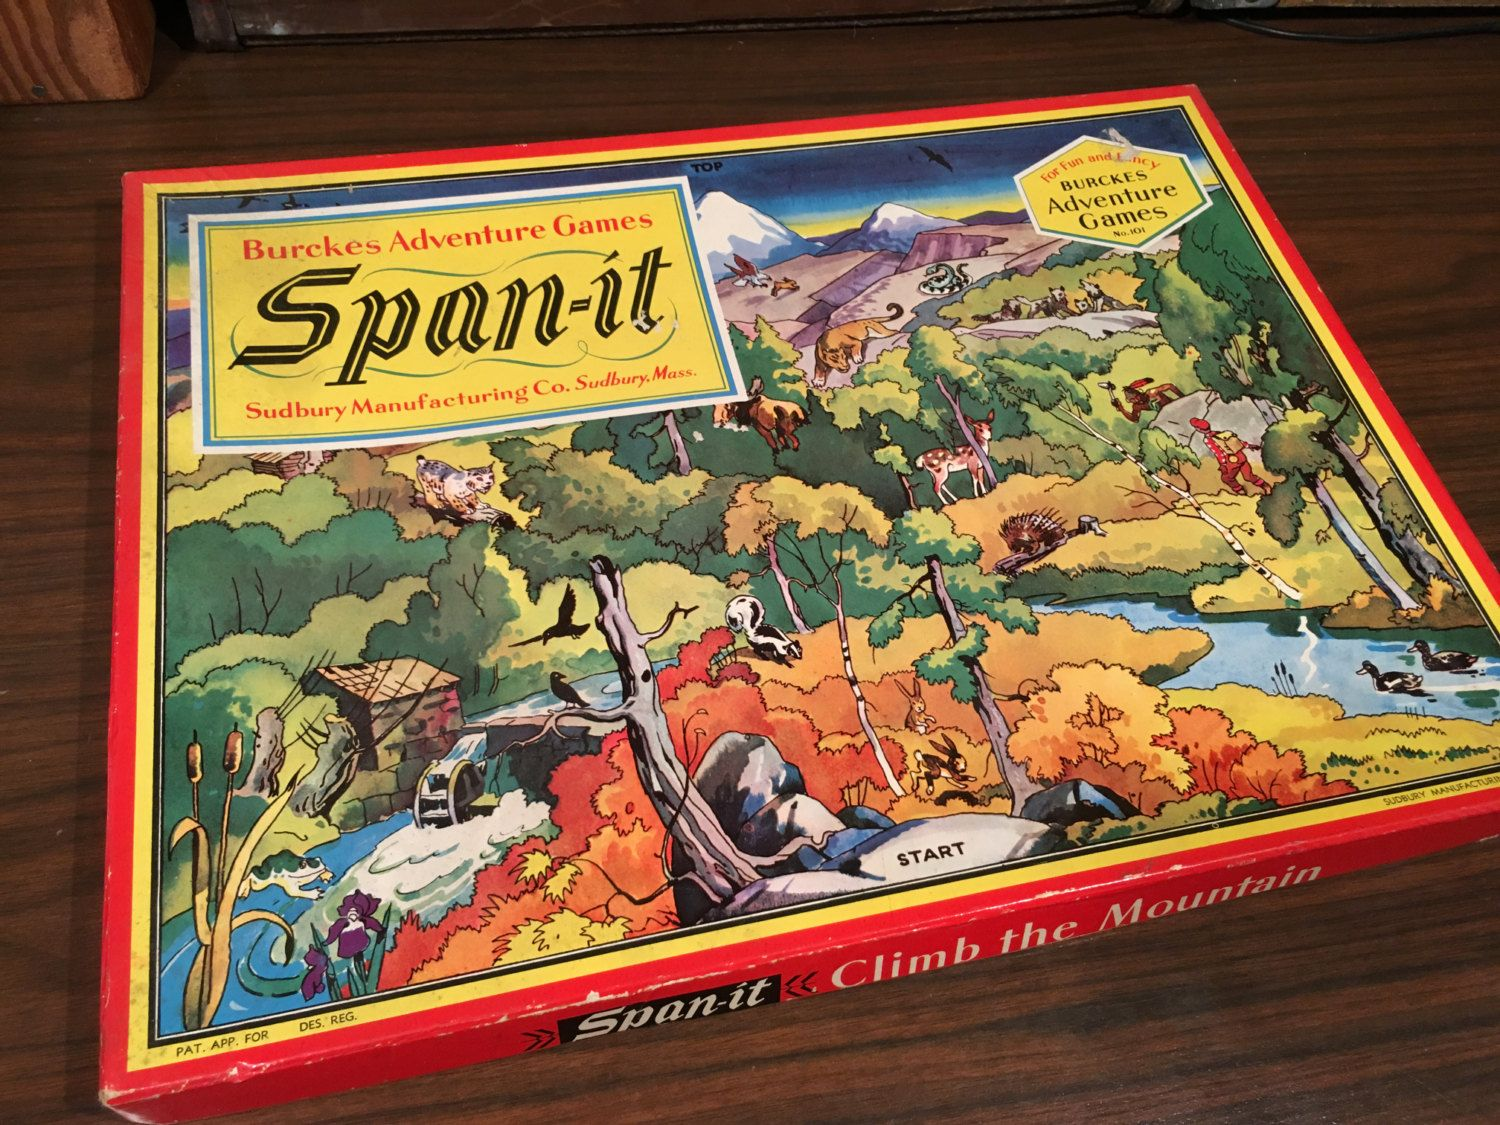 SpanIt Climb the Mountain Vintage Game Complete in Box